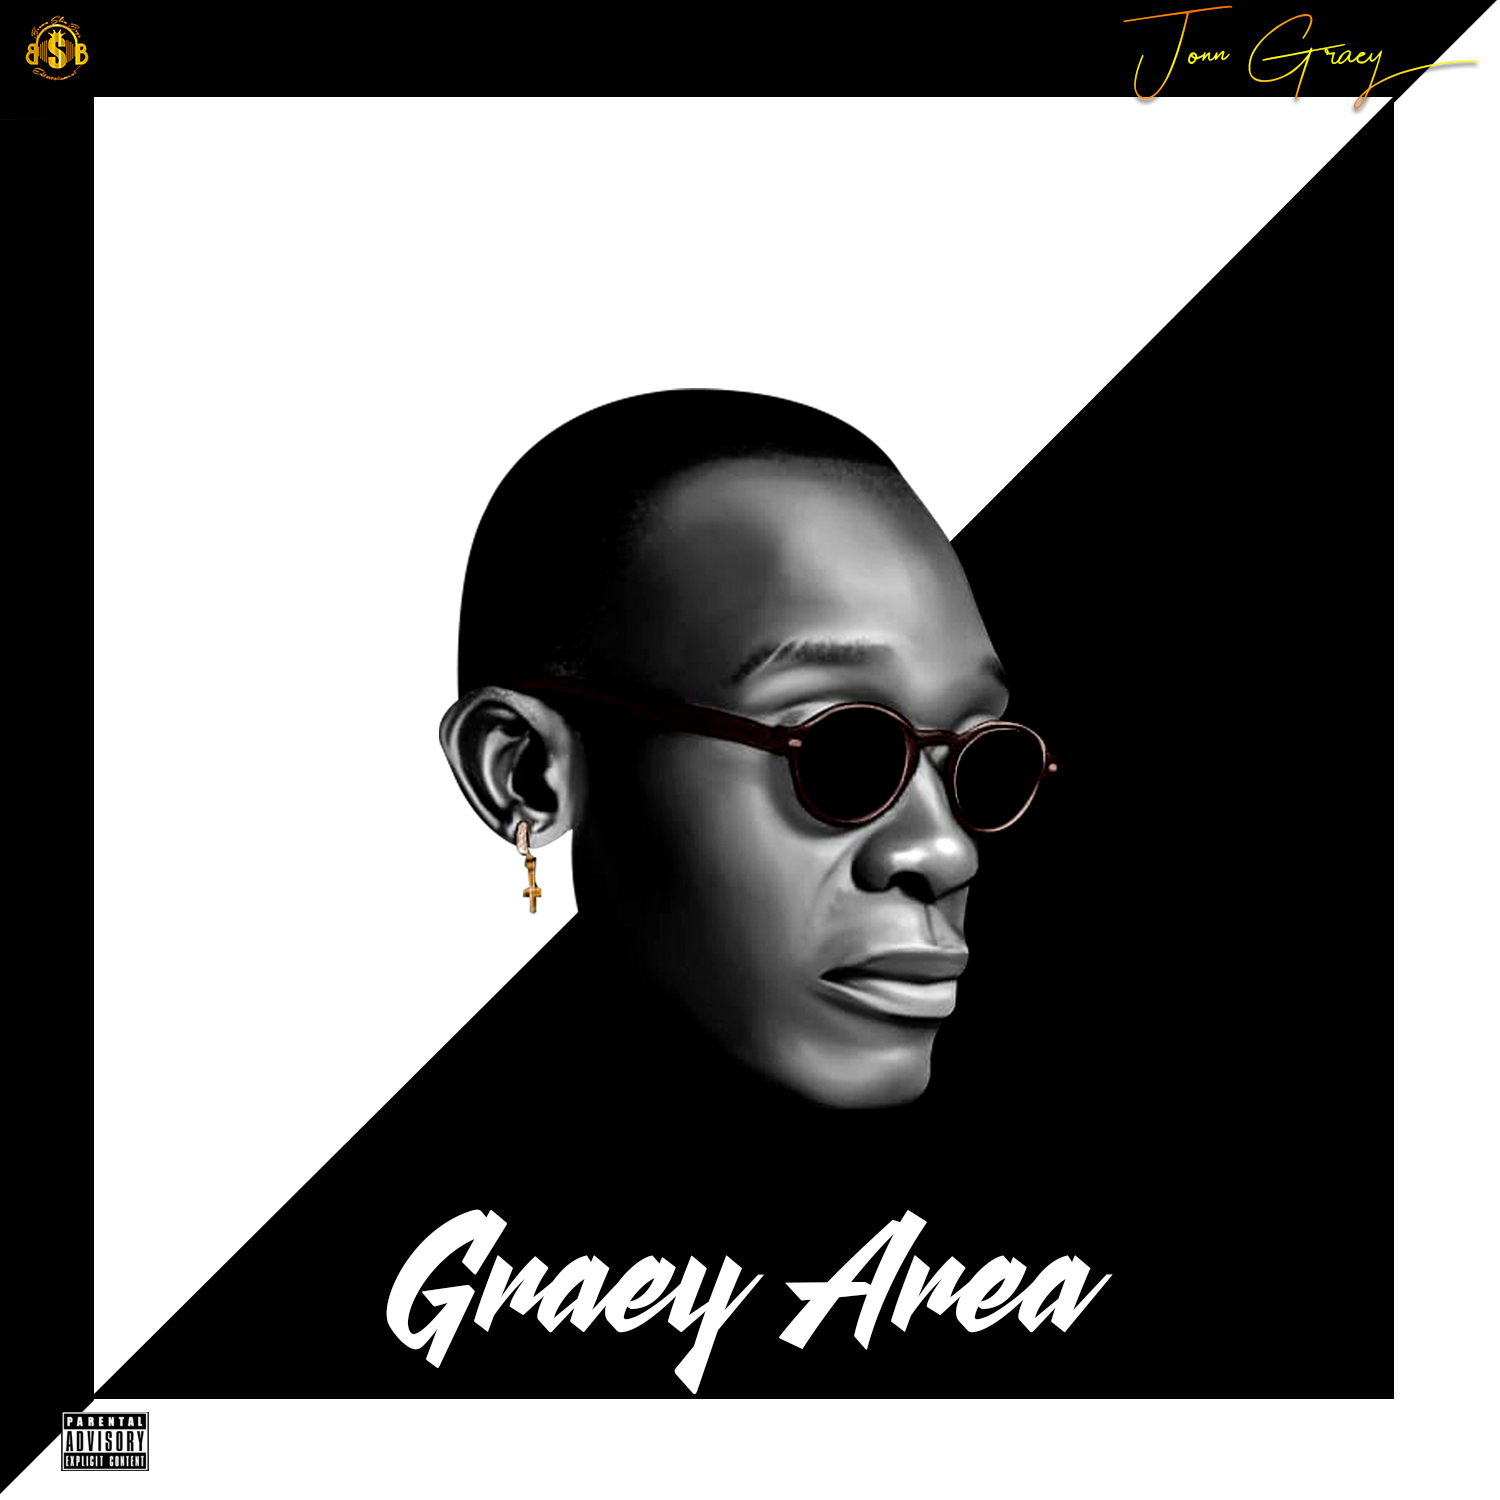 [Extended Play] Jonn Graey - Graey Area - 5 Tracks Project #Arewapublisize